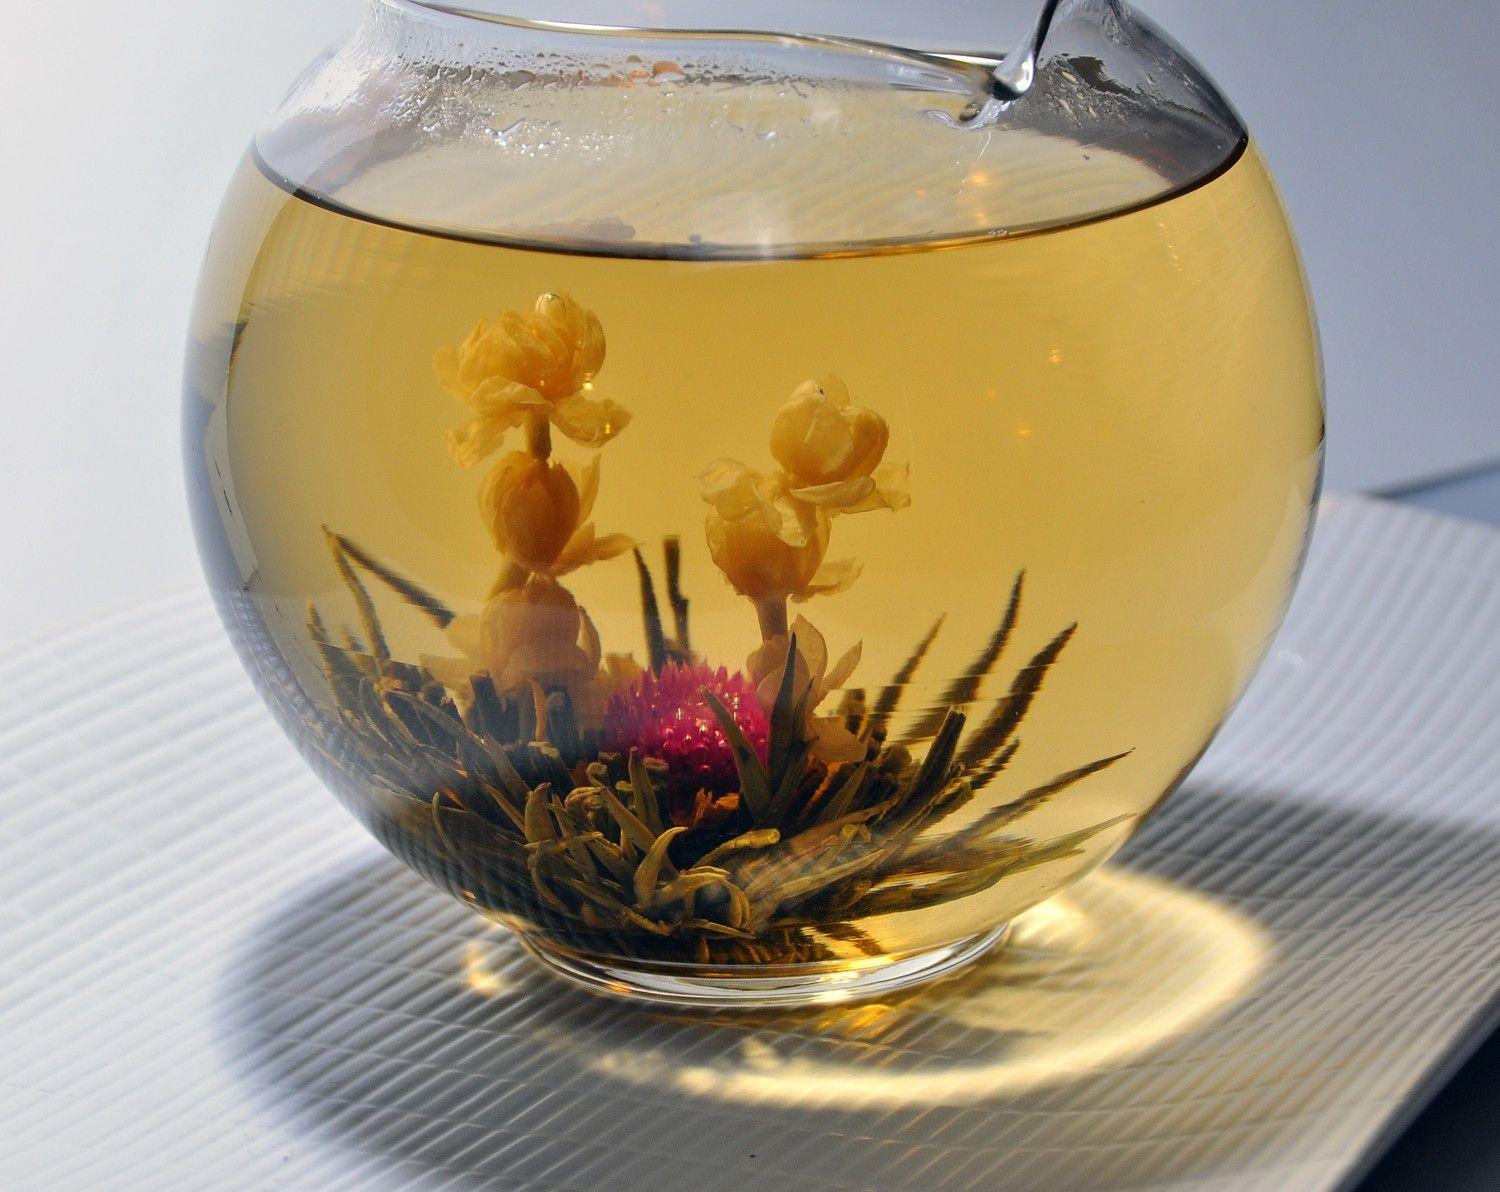 Blooming Tea...it's so pretty!